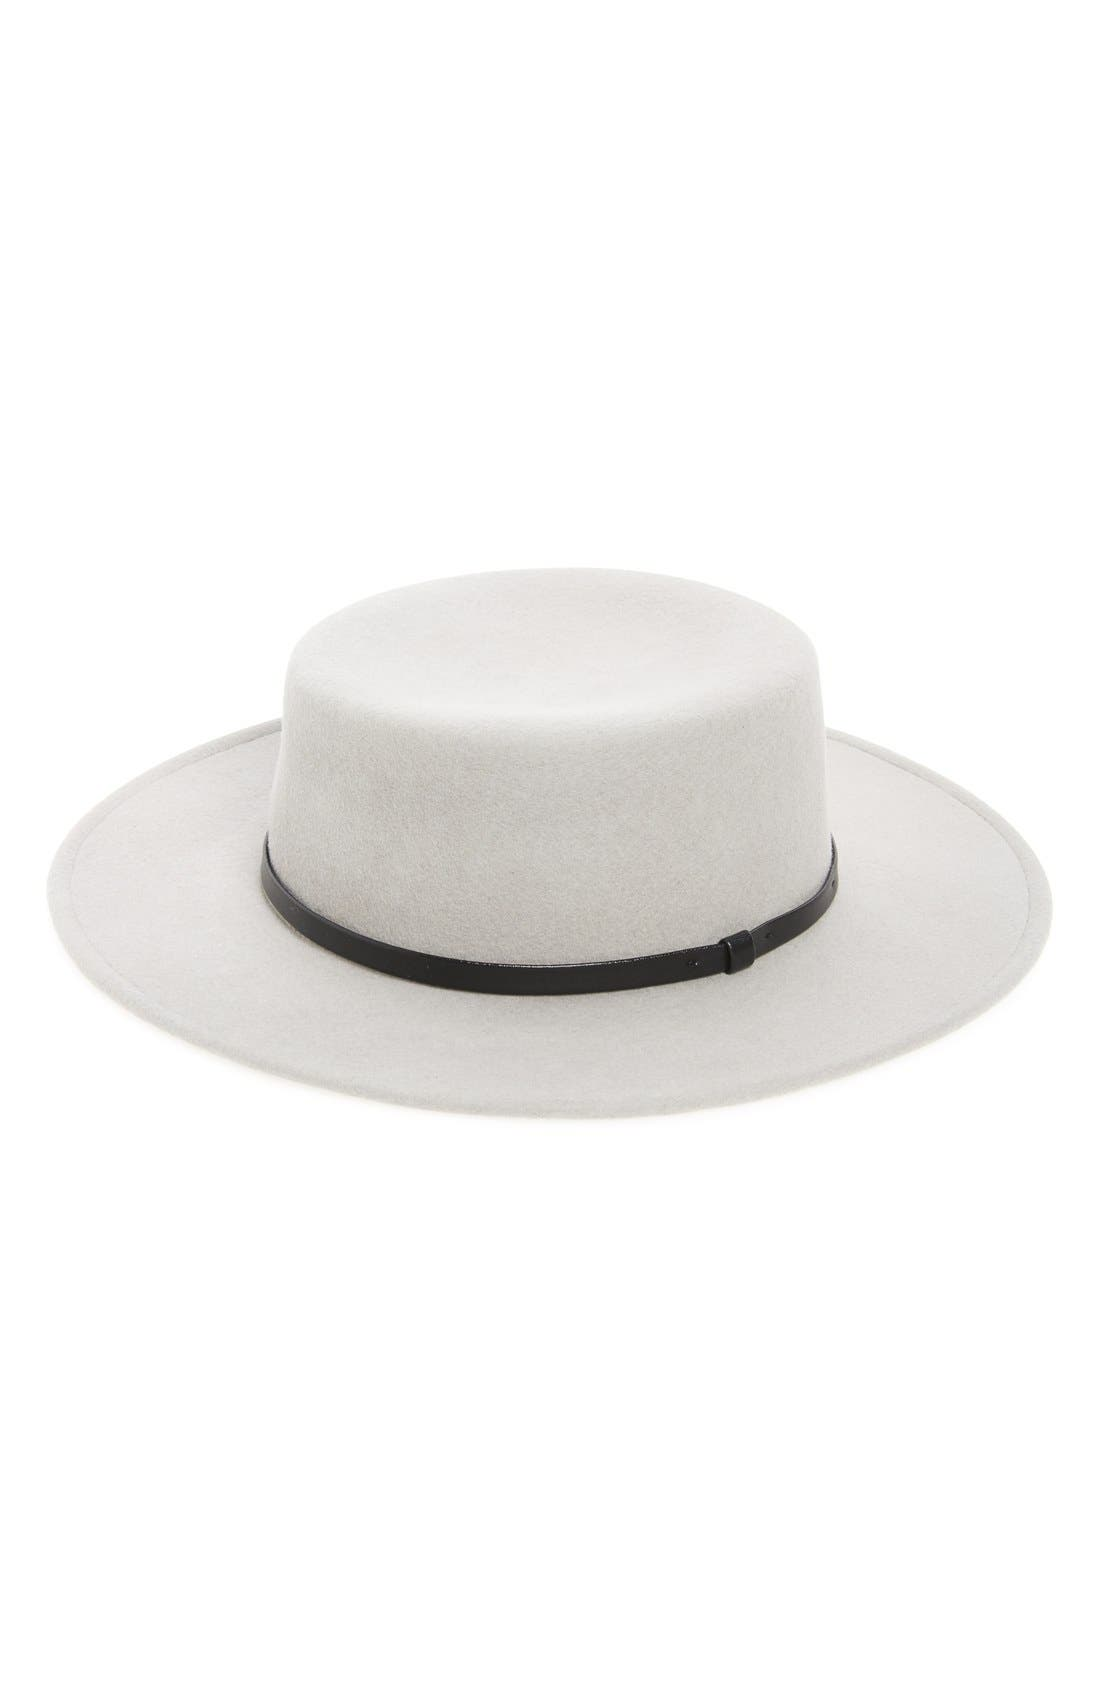 Alternate Image 1 Selected - Sole Society Wool Boater Hat